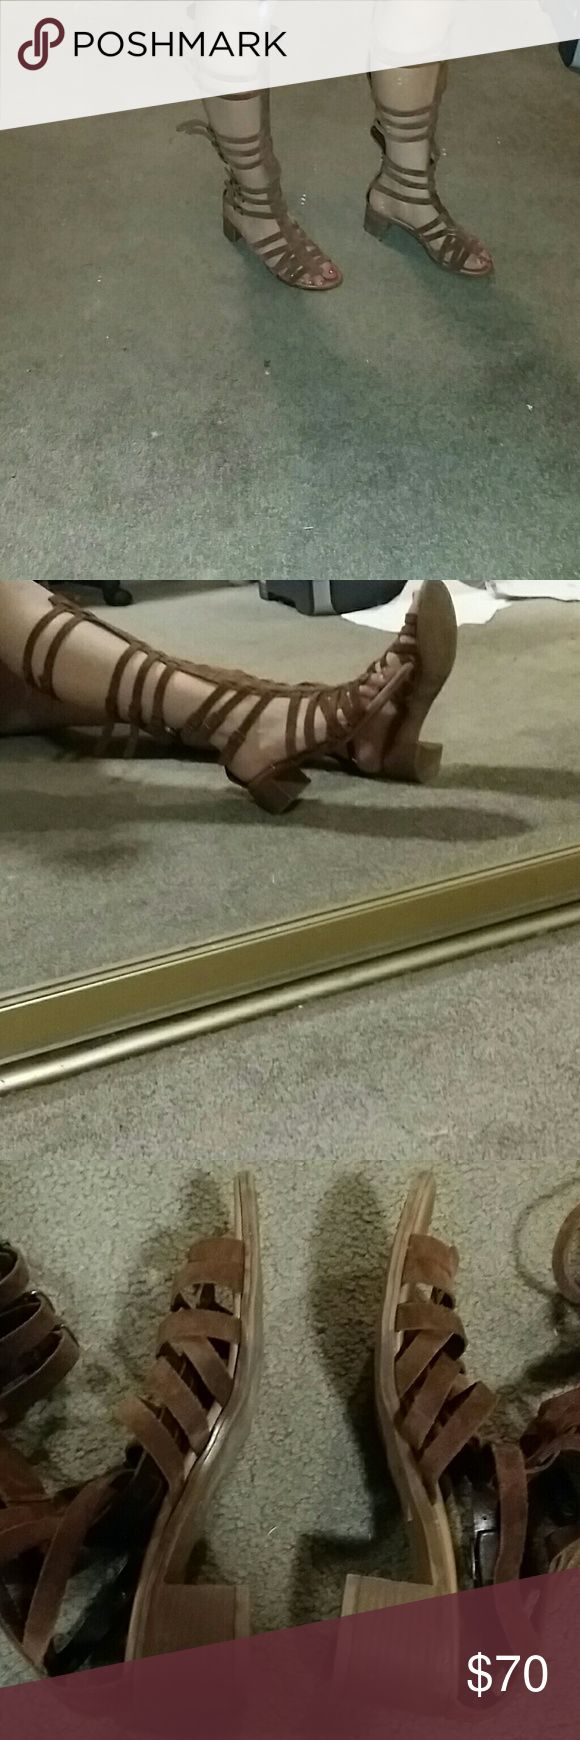 Steven Madden Caged Sandals Never worn other than for these pictures. Brown suede. Perfect with a dress or romper. Steve Madden Shoes Sandals